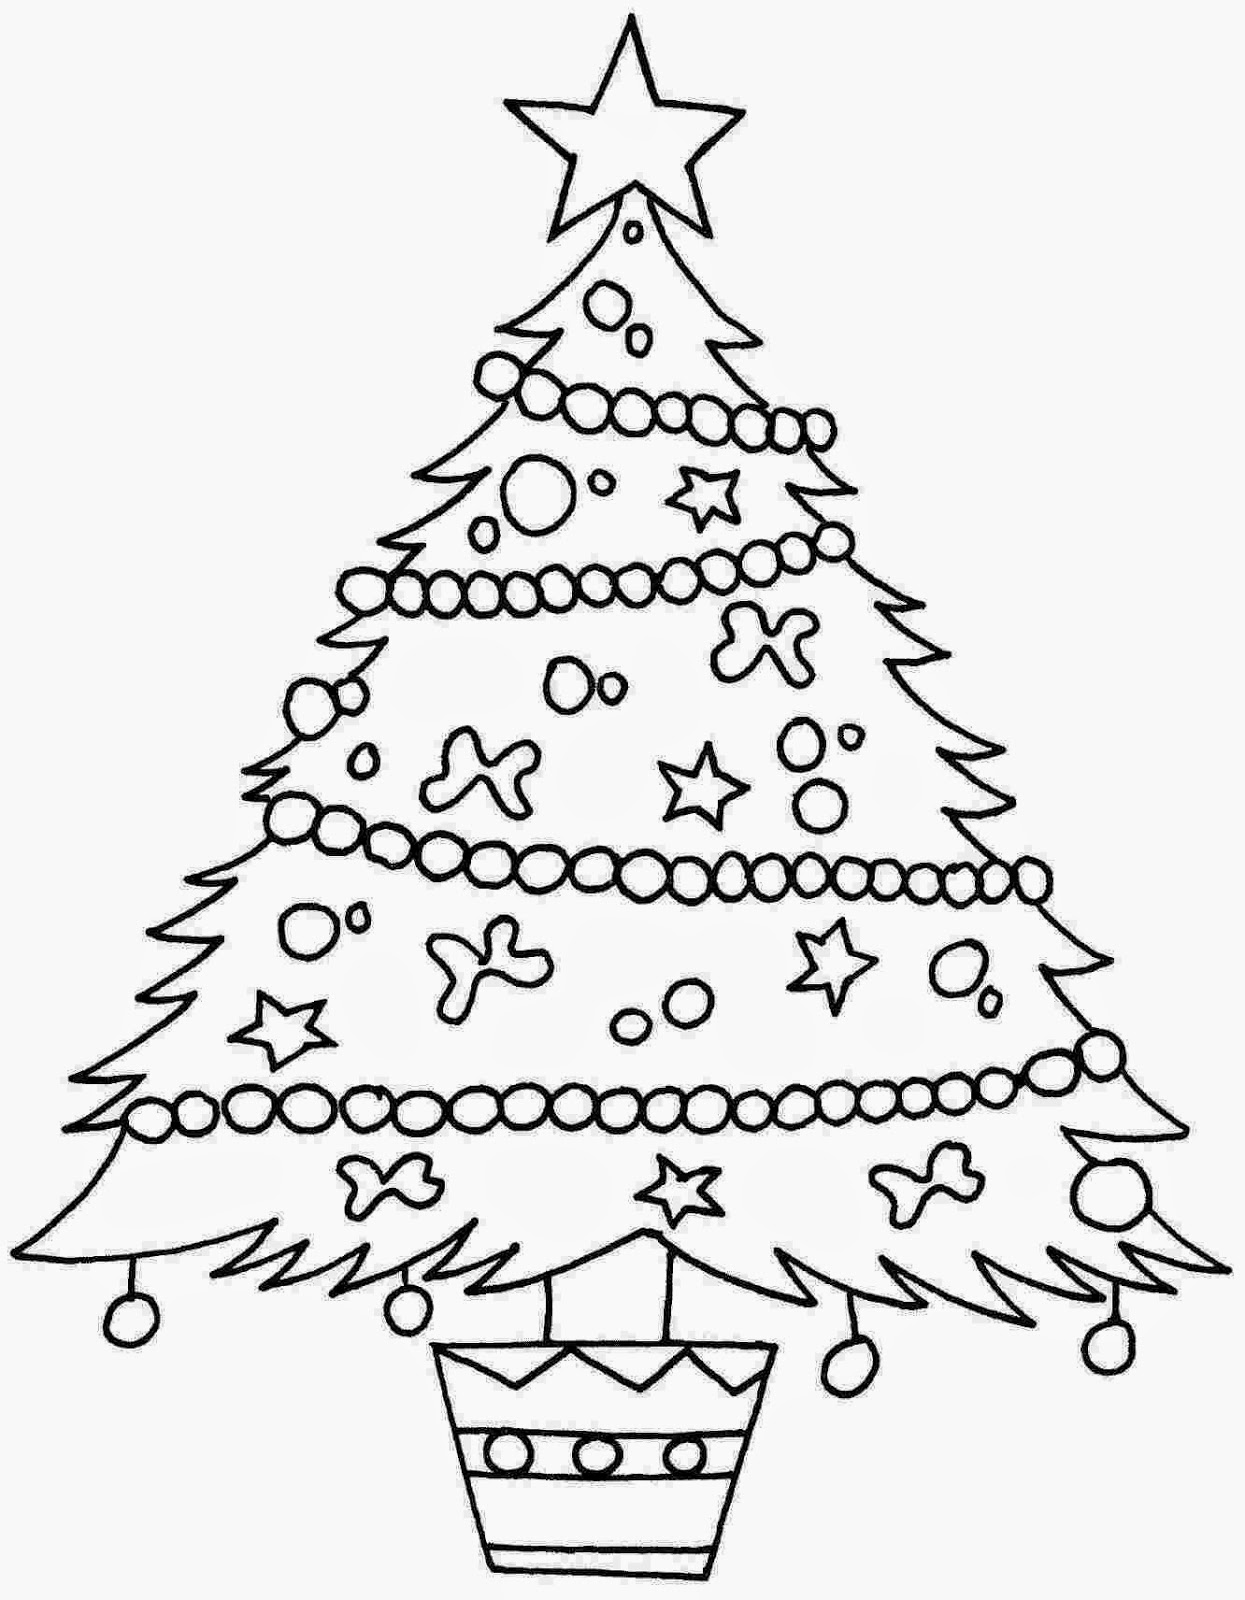 xmas tree coloring pages christmas coloring pages pages tree coloring xmas